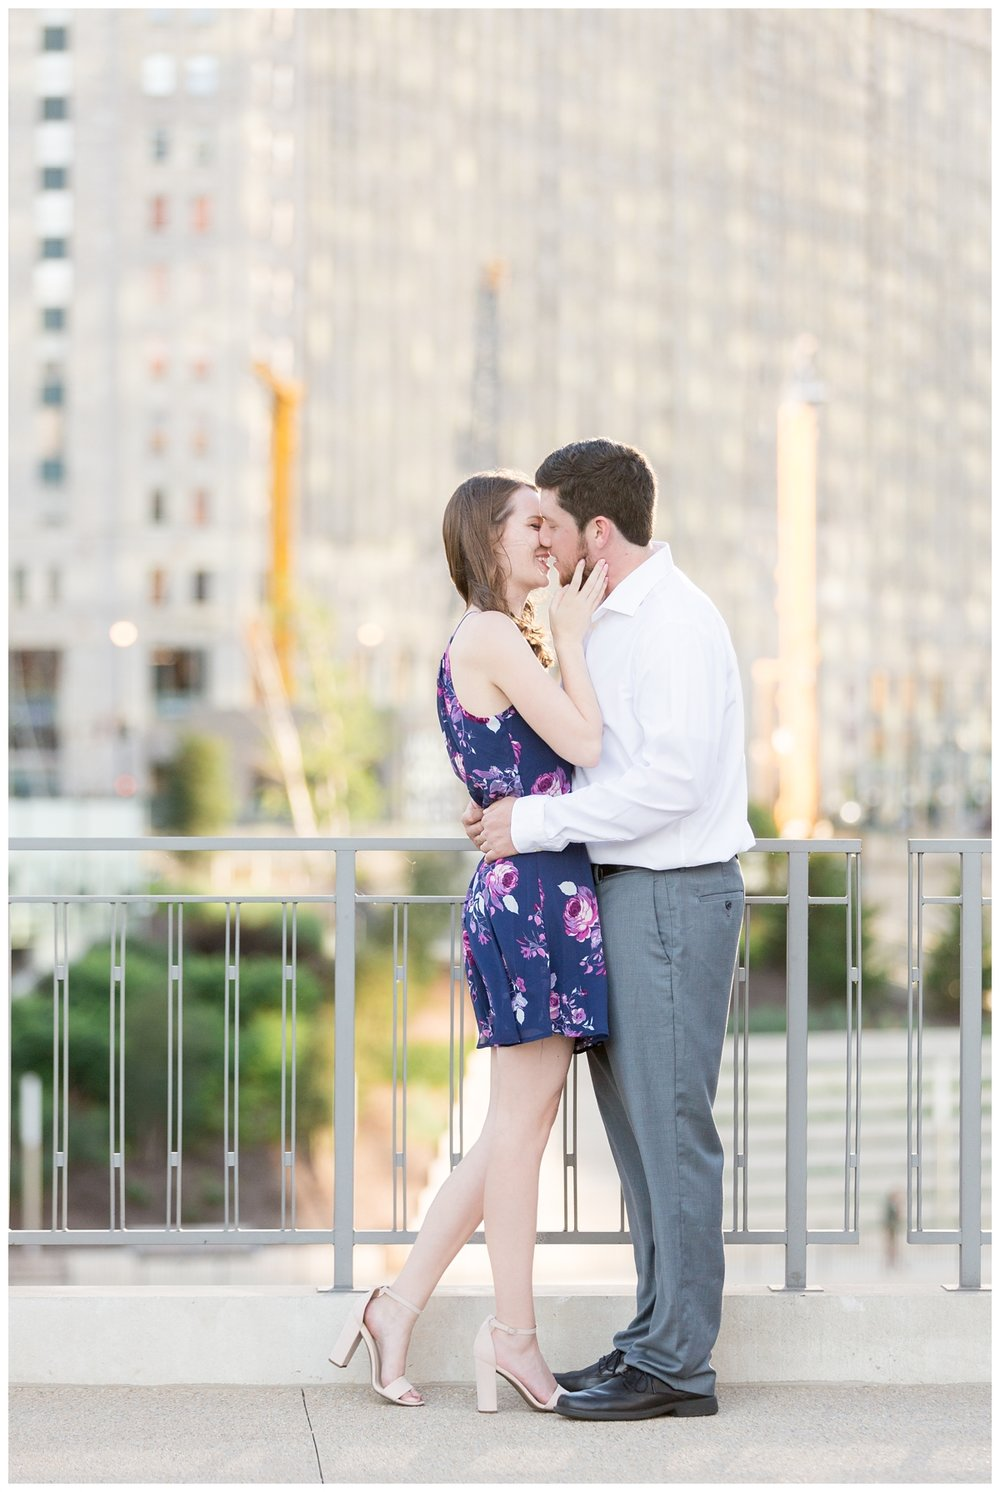 Destination-Kinzie-St.Bridge-Chicago-Engagement-Photos_5656.jpg